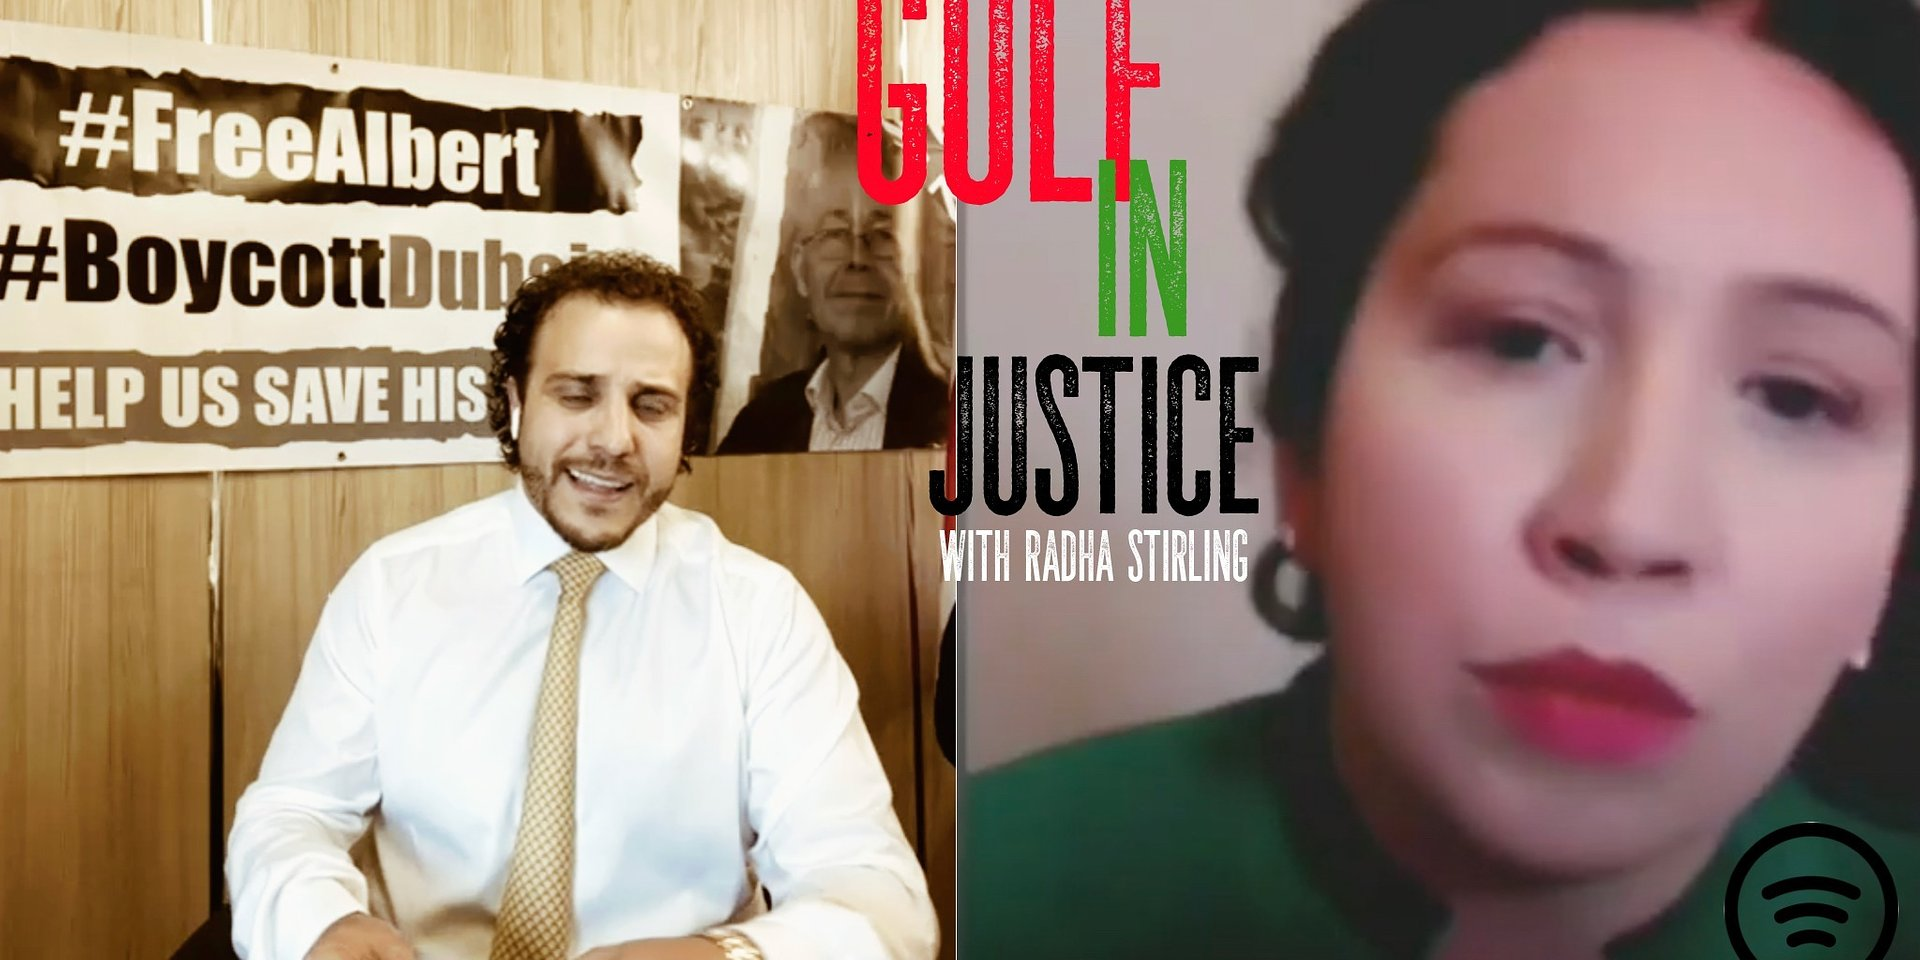 Gulf in Justice Podcast with Radha Stirling - Shocking interview with Wolfgang Douglas on the #FreeAlbert campaign